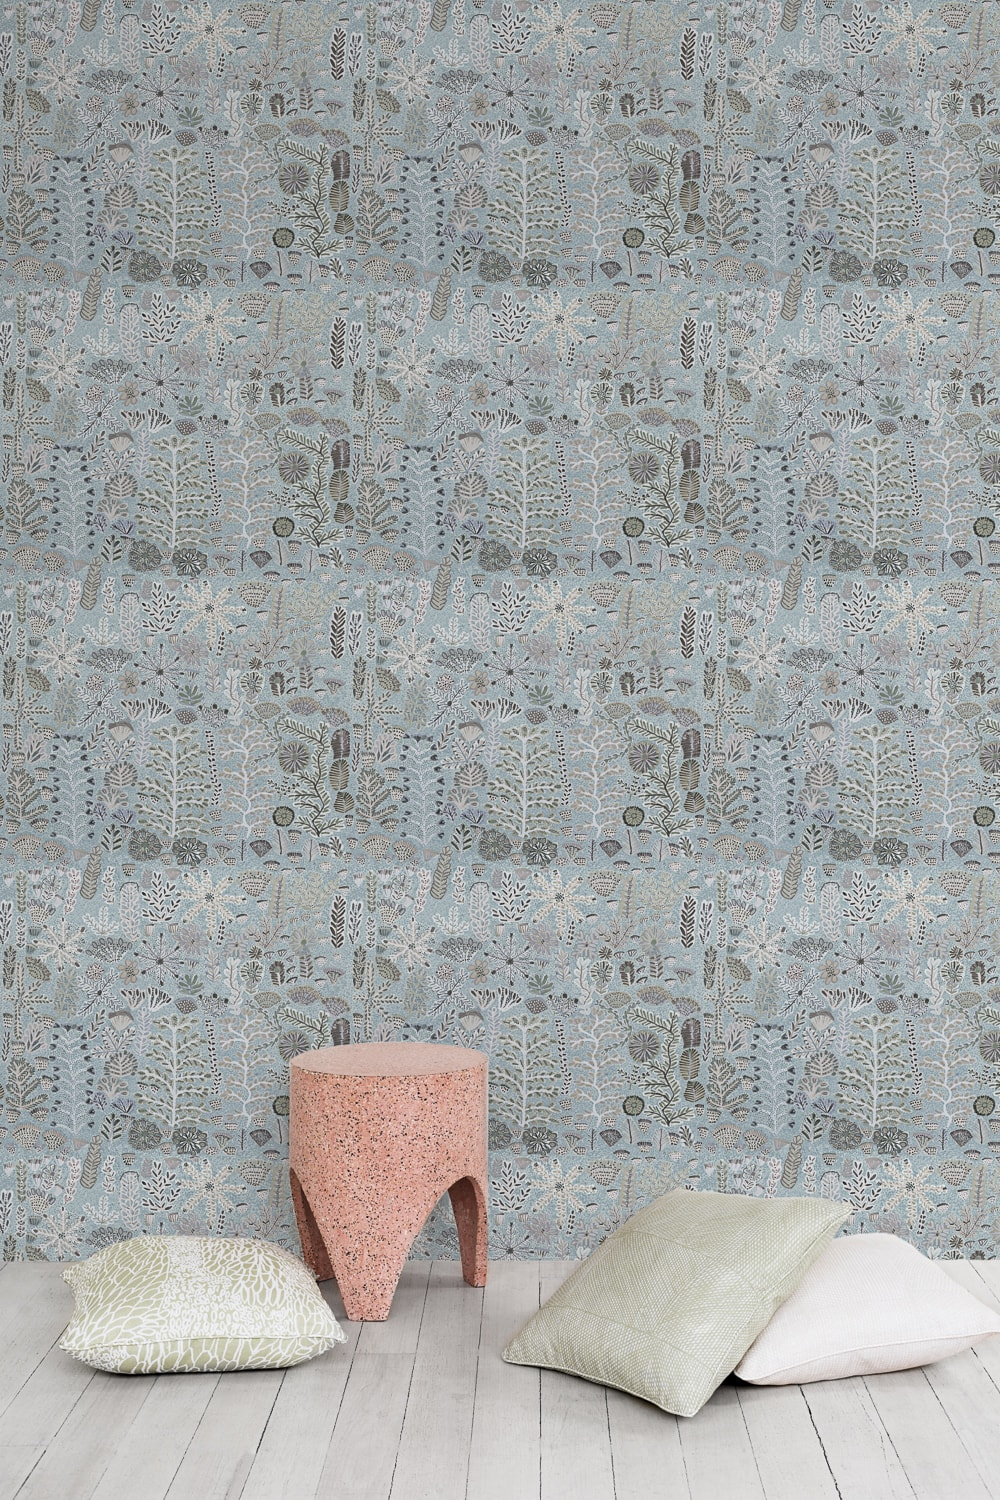 Sugarbag Dreaming 'Saltbush' wallpaper